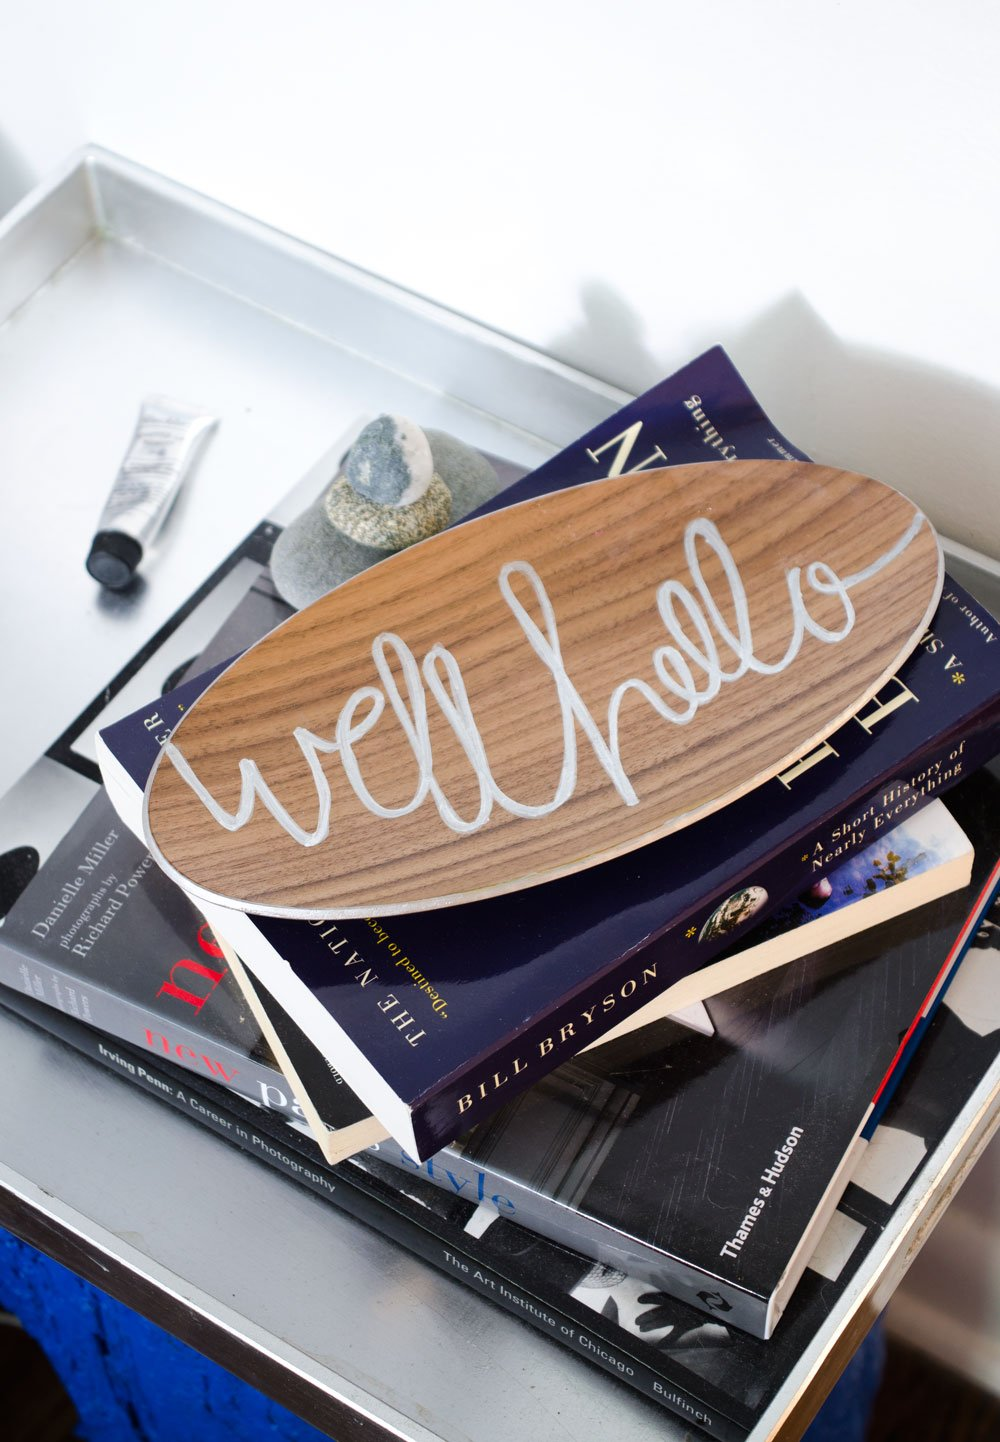 Take a paint pen and add a fun message to an Ikea serving bowl for a great decorative element. #IkeaHack